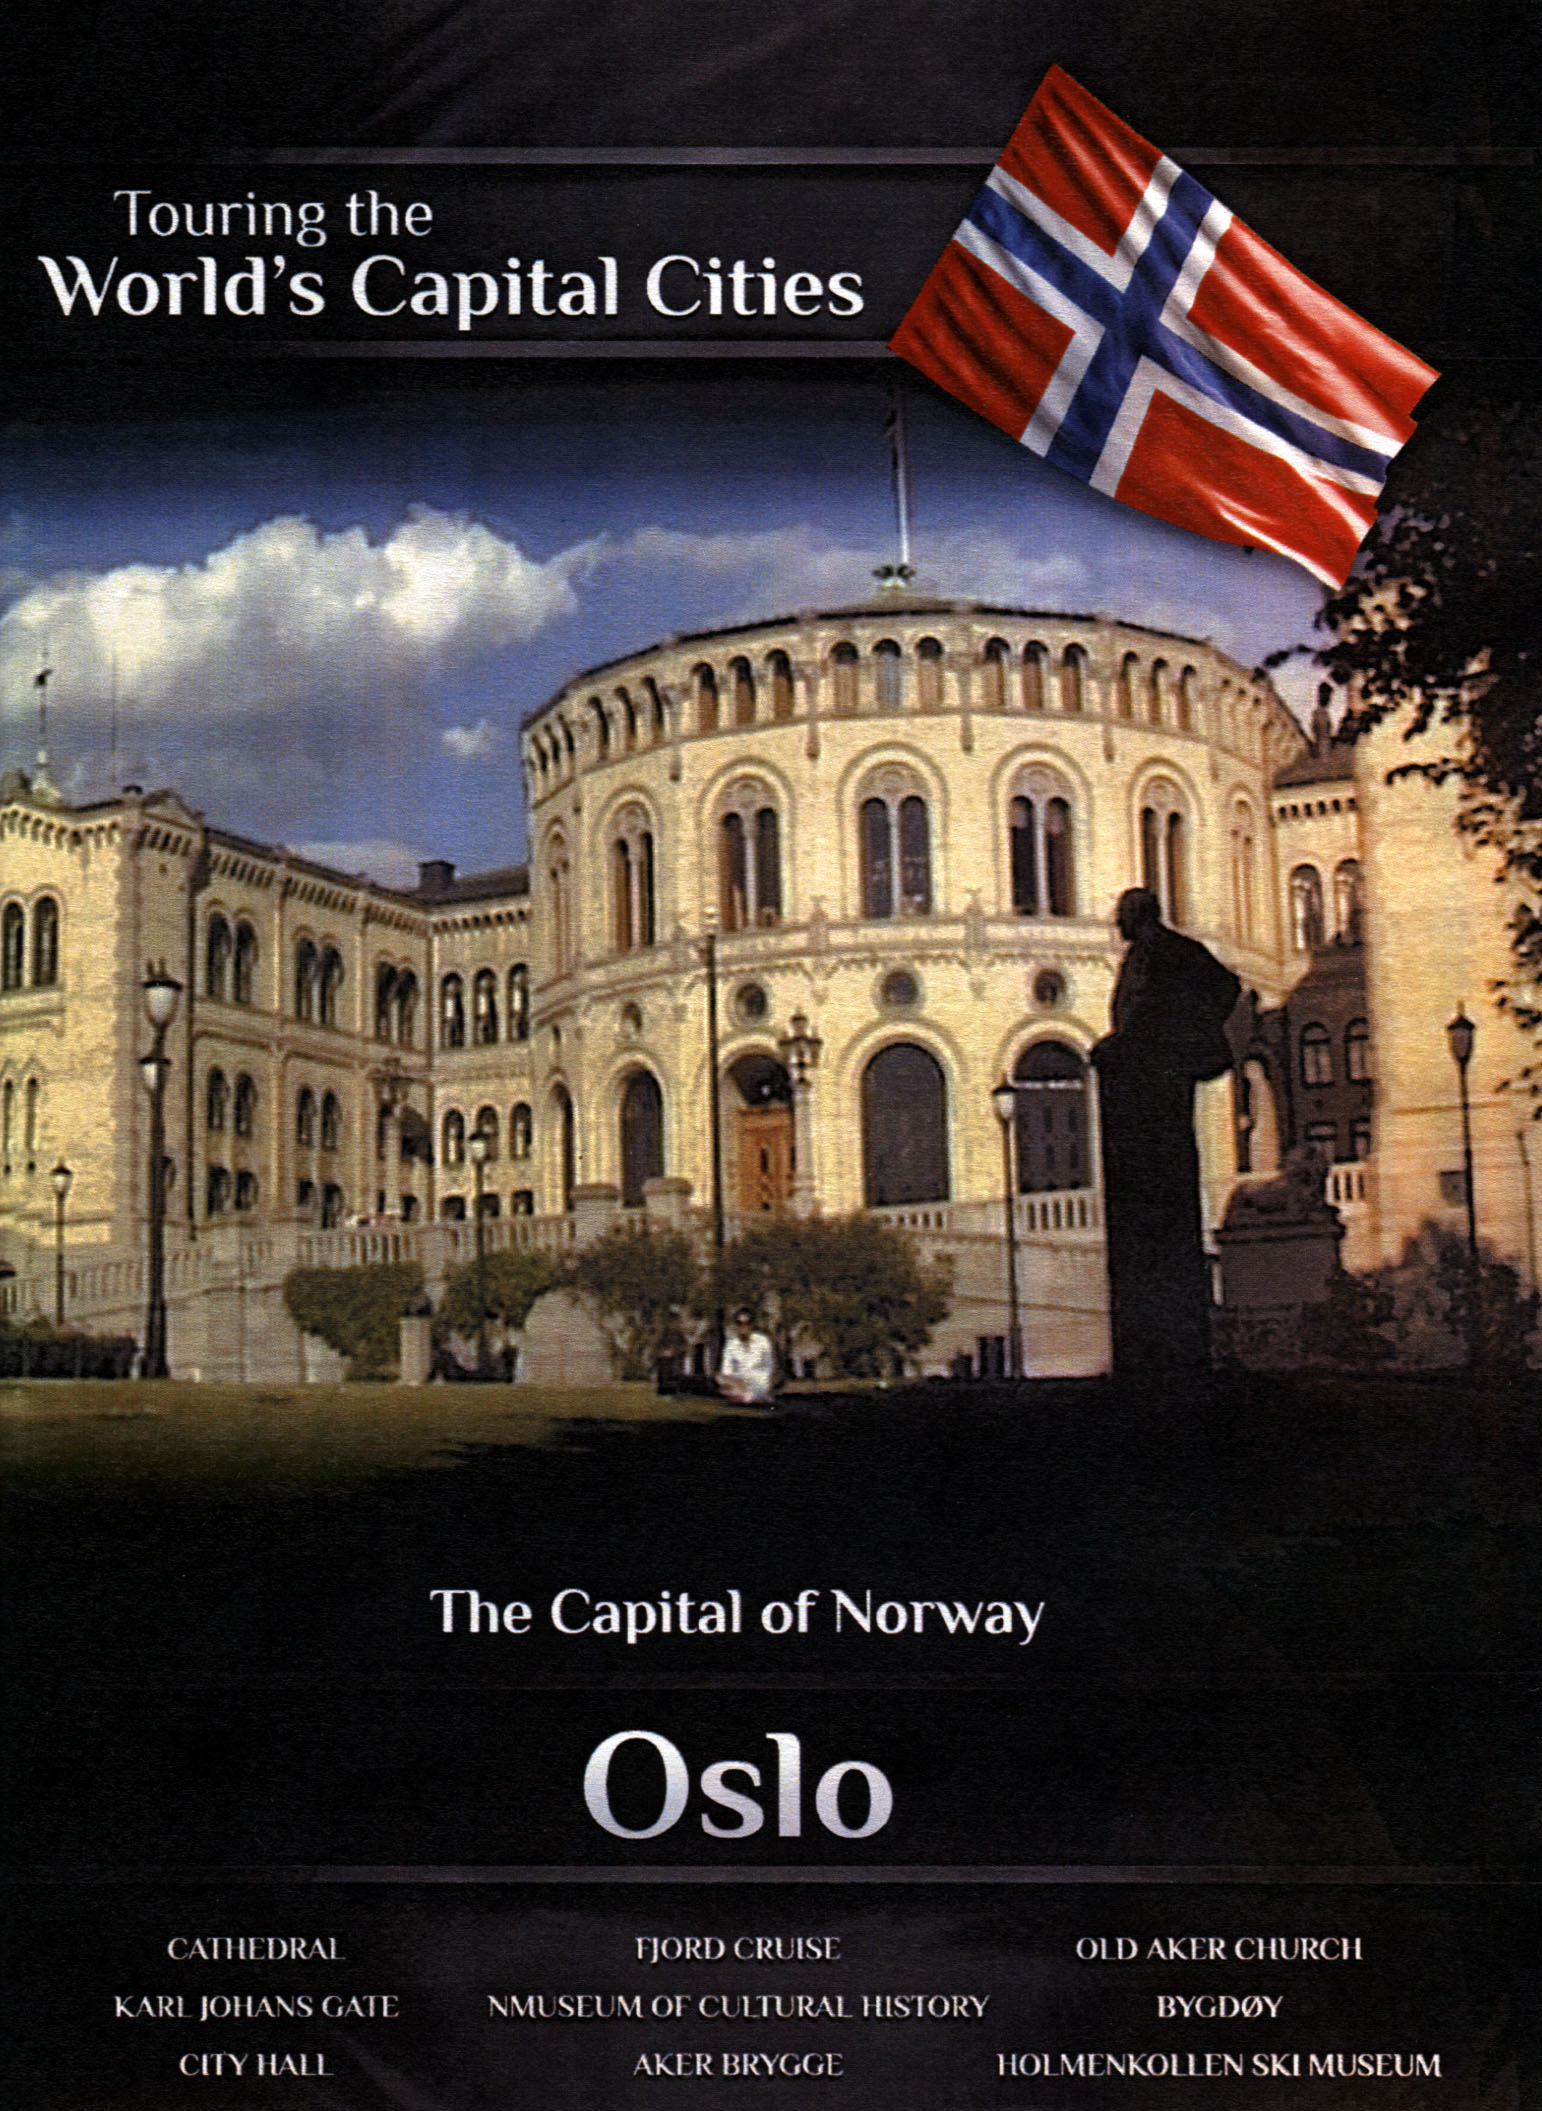 Touring the World's Capital Cities: The Capital of Norway - Oslo